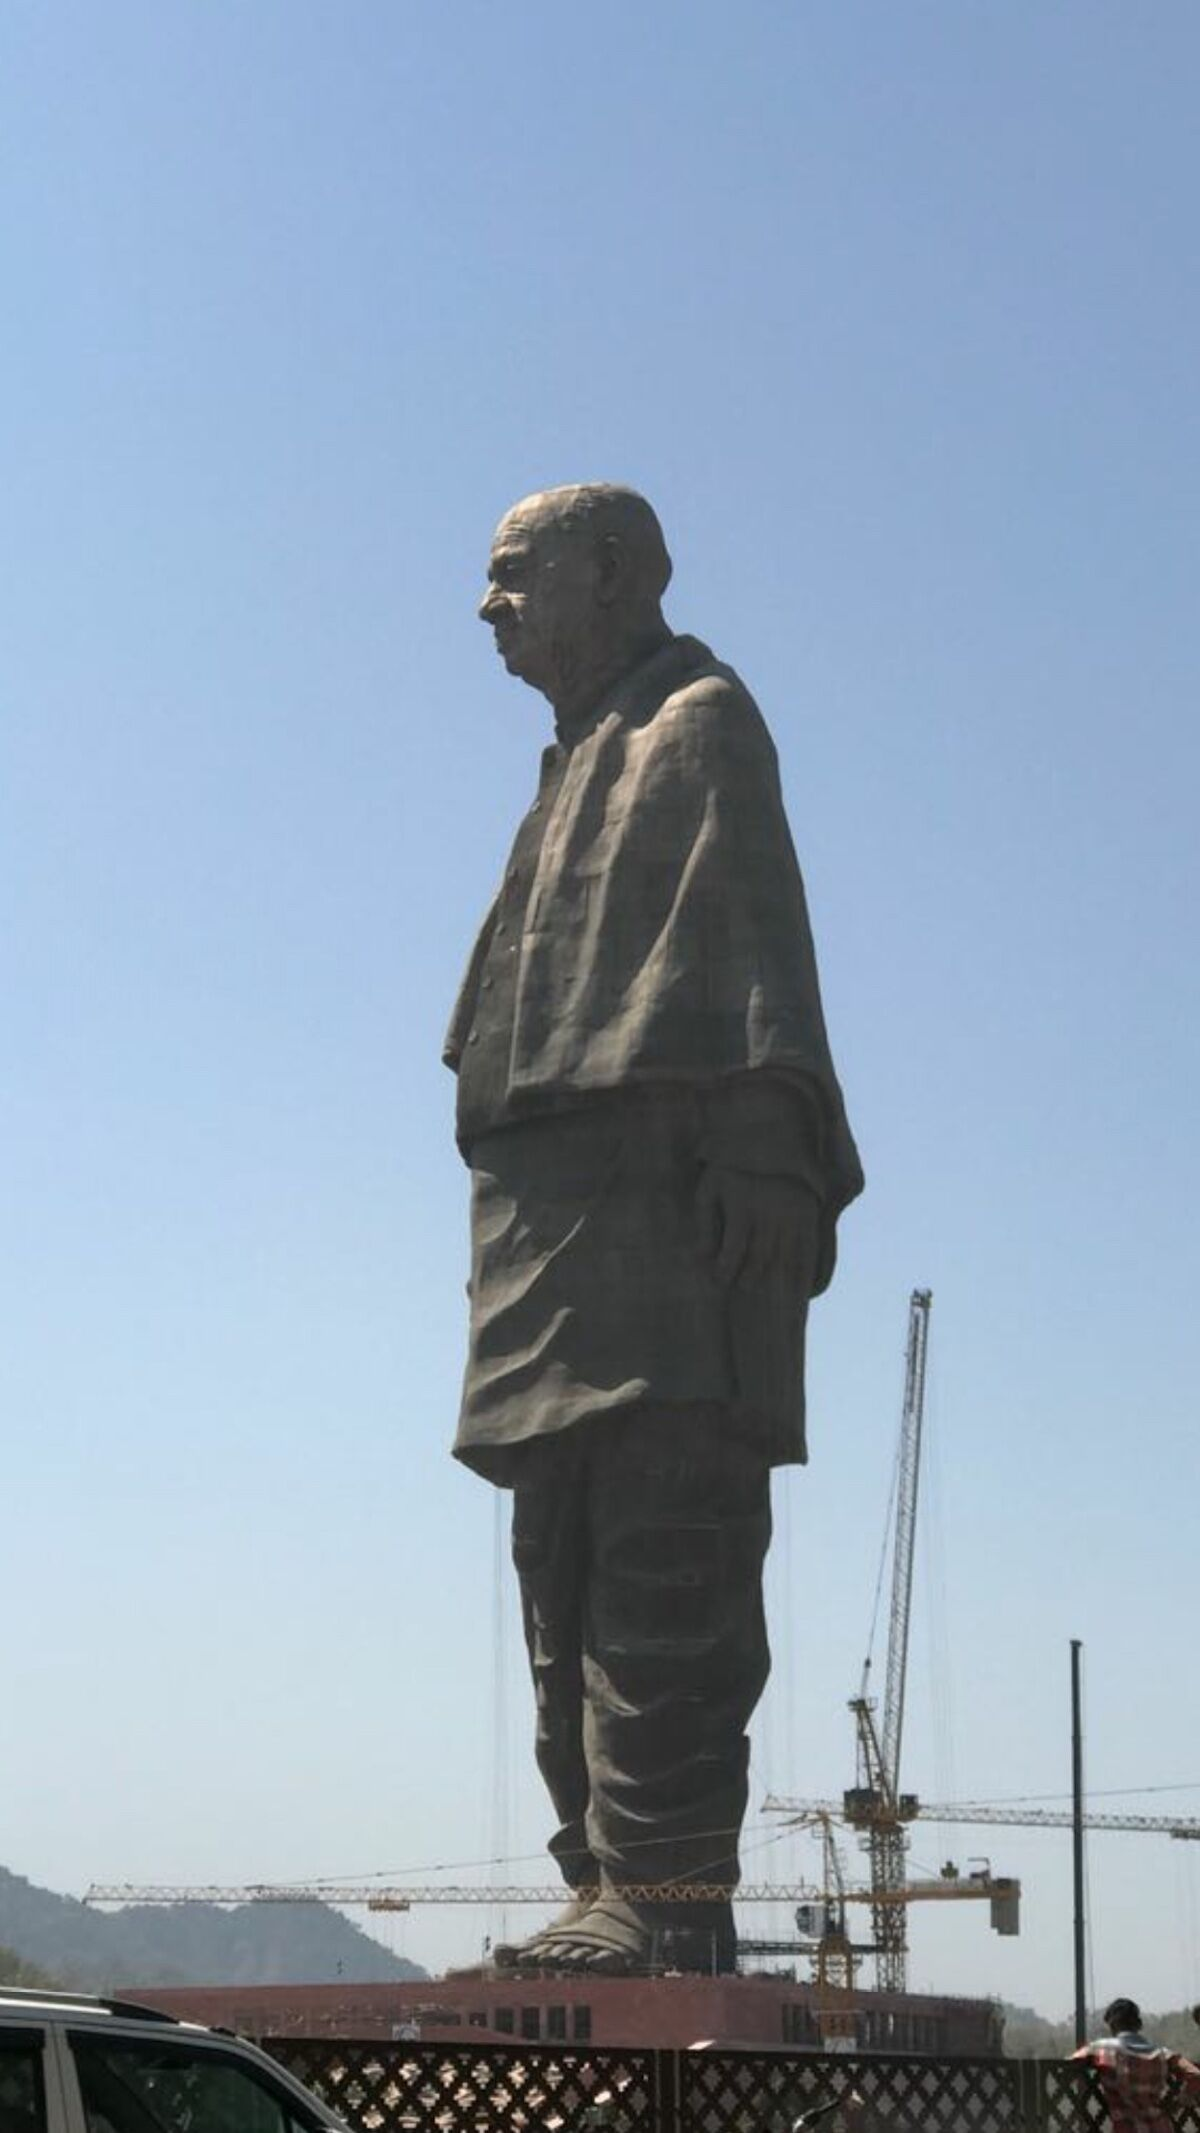 The Statue of Unity, depicting Sardar Vallabhbhai Patel, in Gujarat state, India. Photo by Rahul 71144, via Wikimedia Commons.